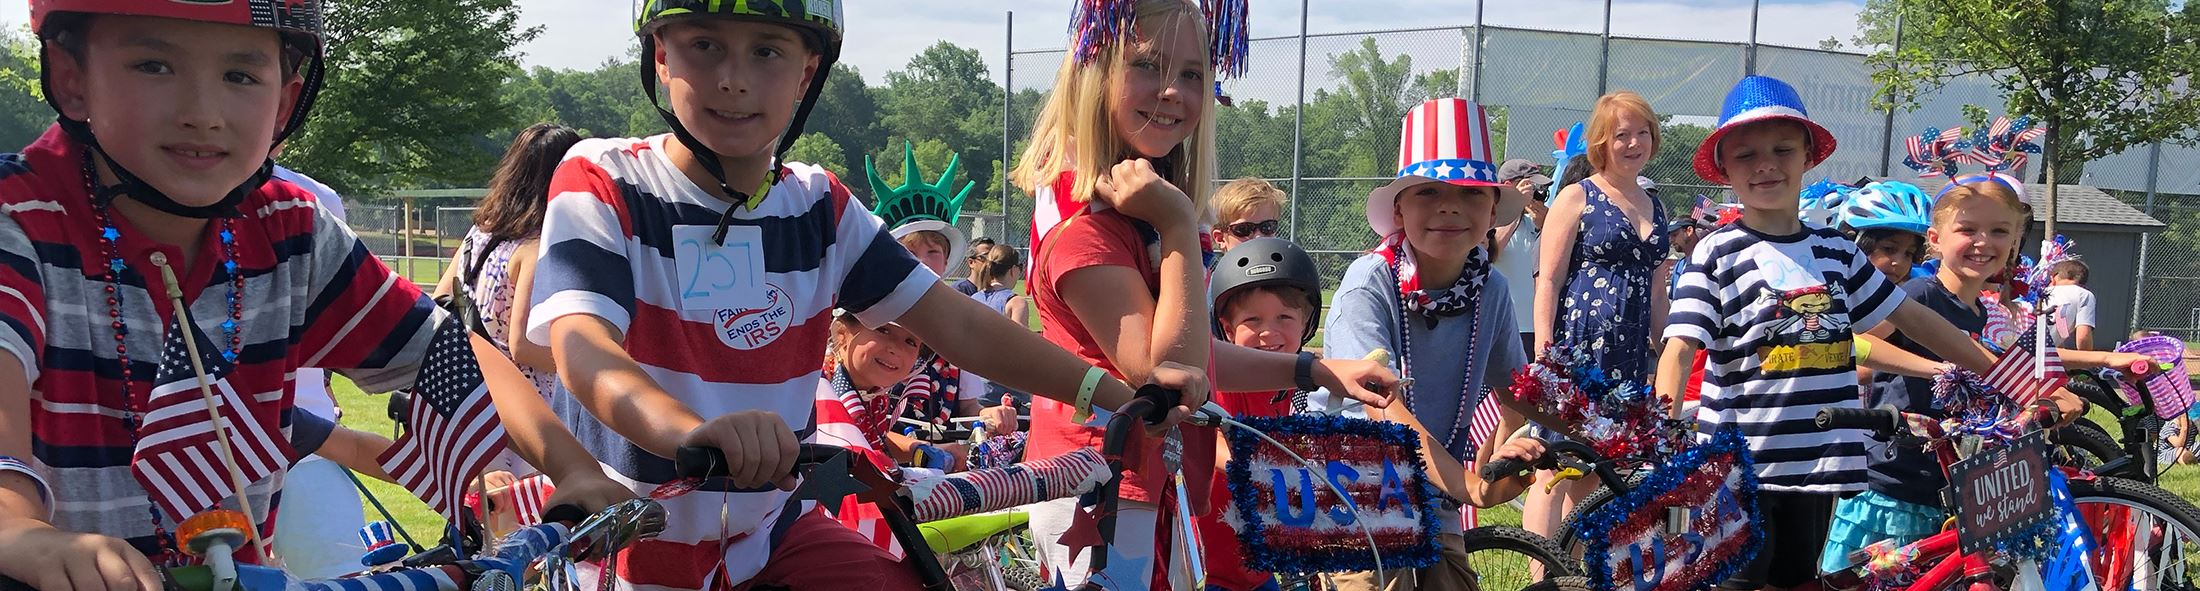 Kids on bikes for Independence Day parade